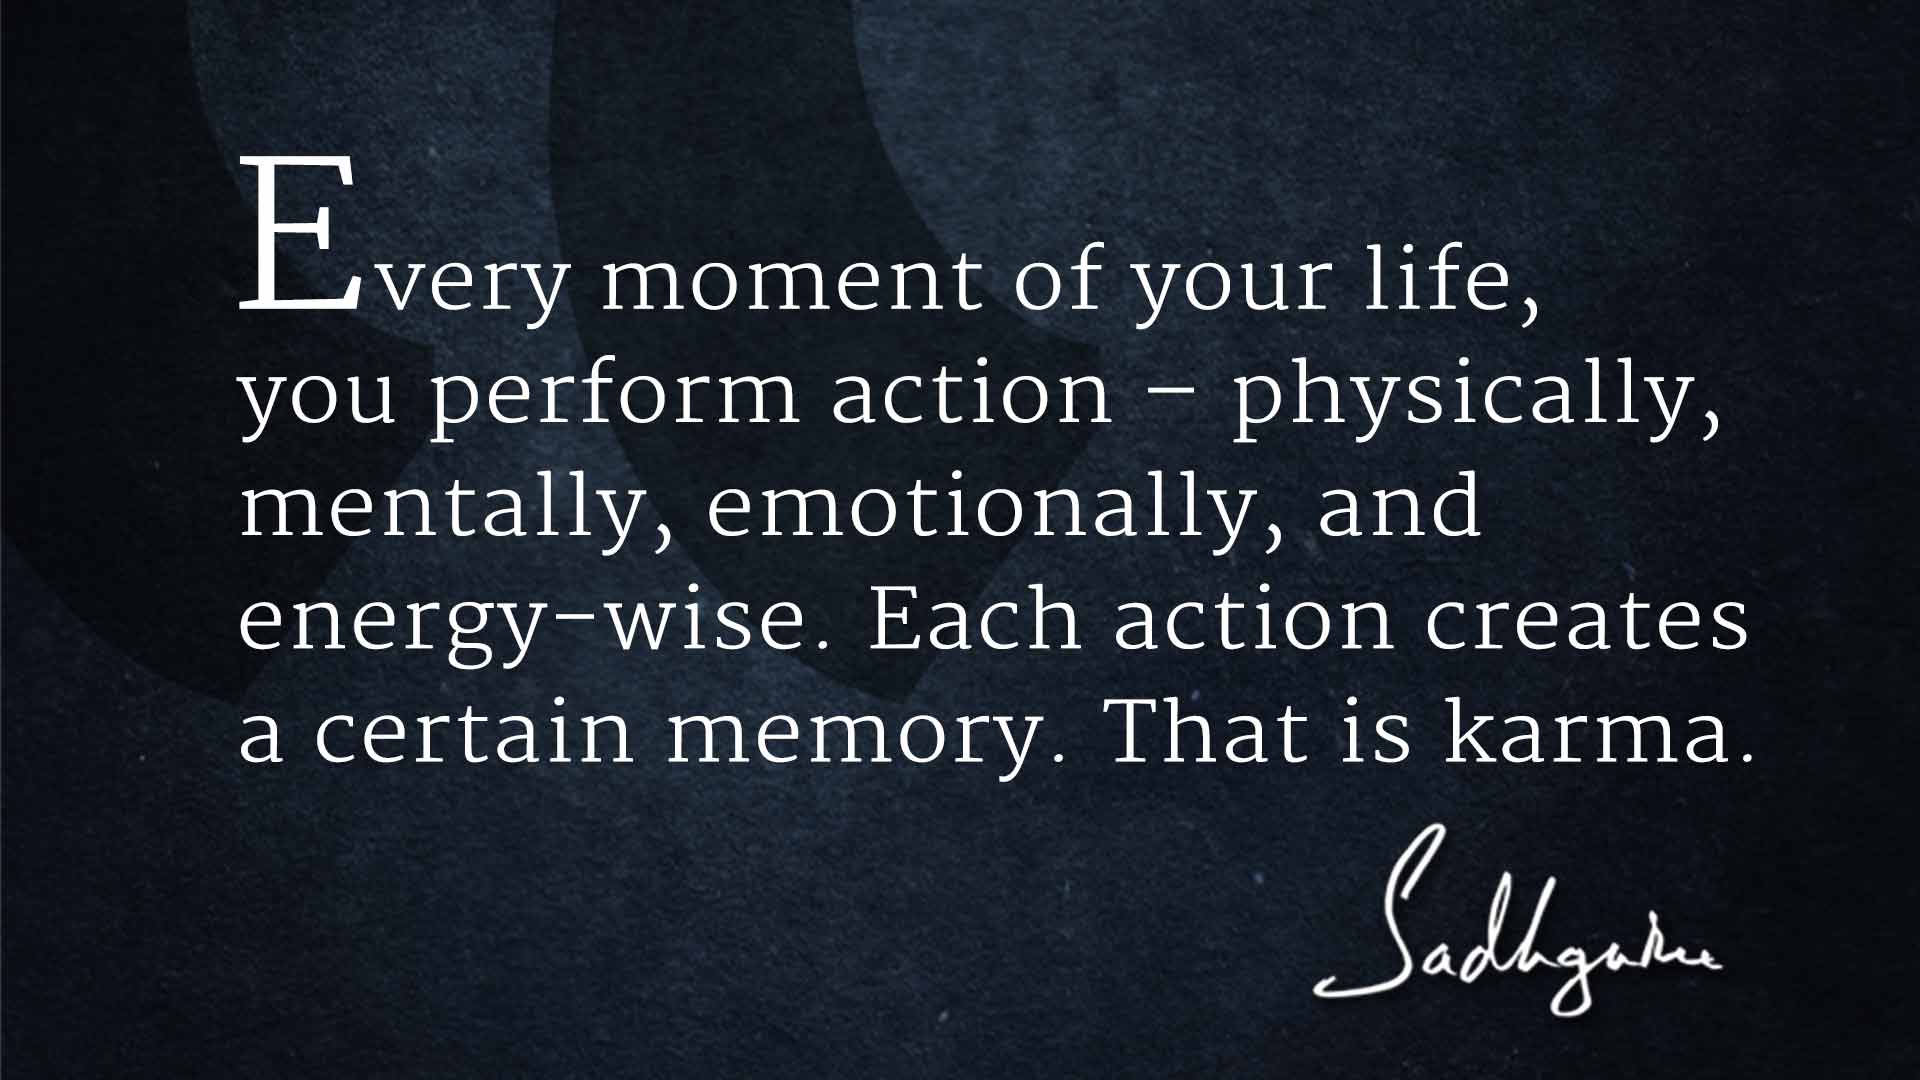 Quotes Quotes 6 Sadhguru Quotes On Karma  The Isha Blog